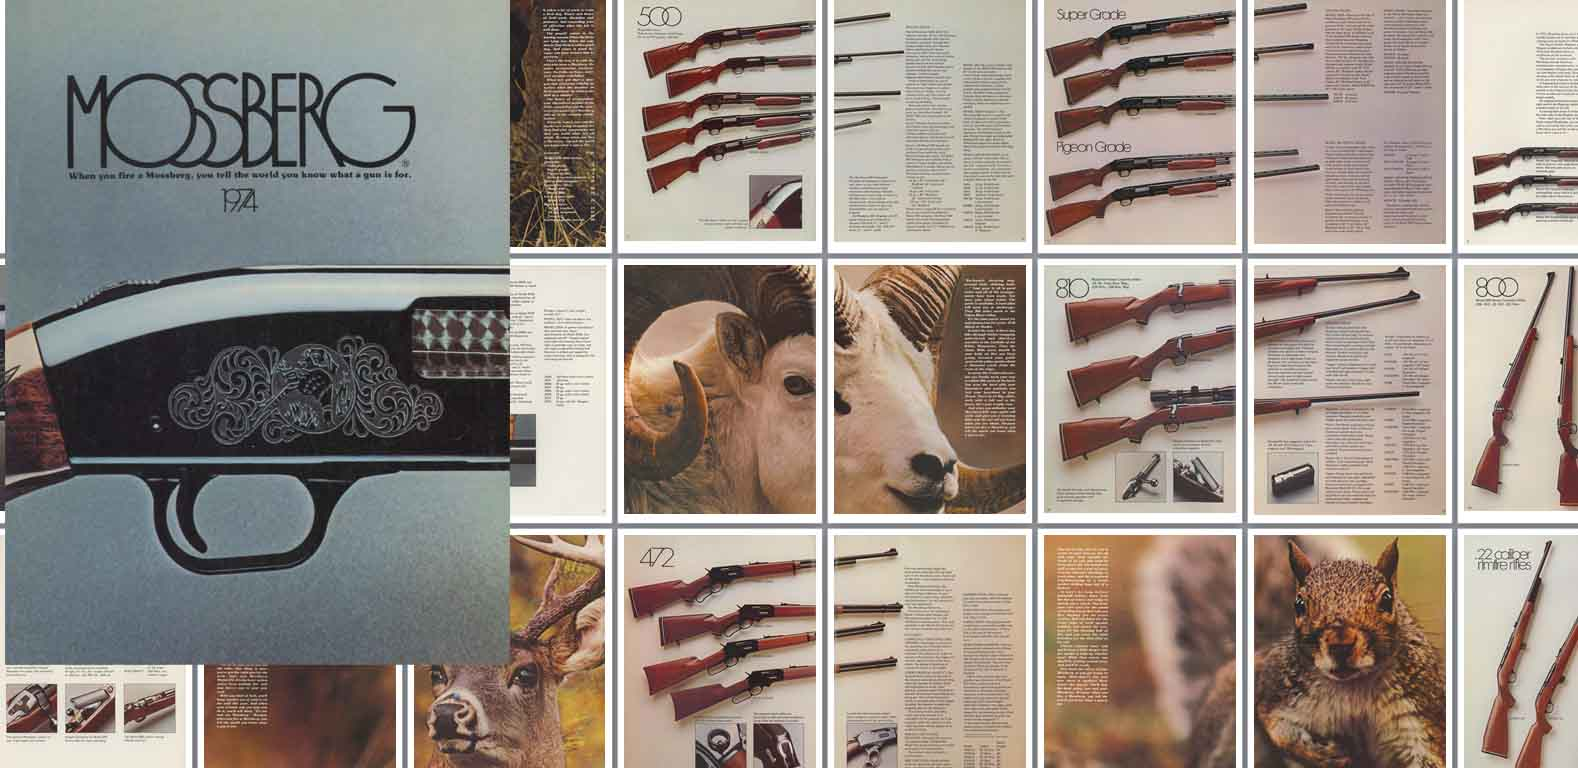 Mossberg 1974 Gun Catalog- Long Version